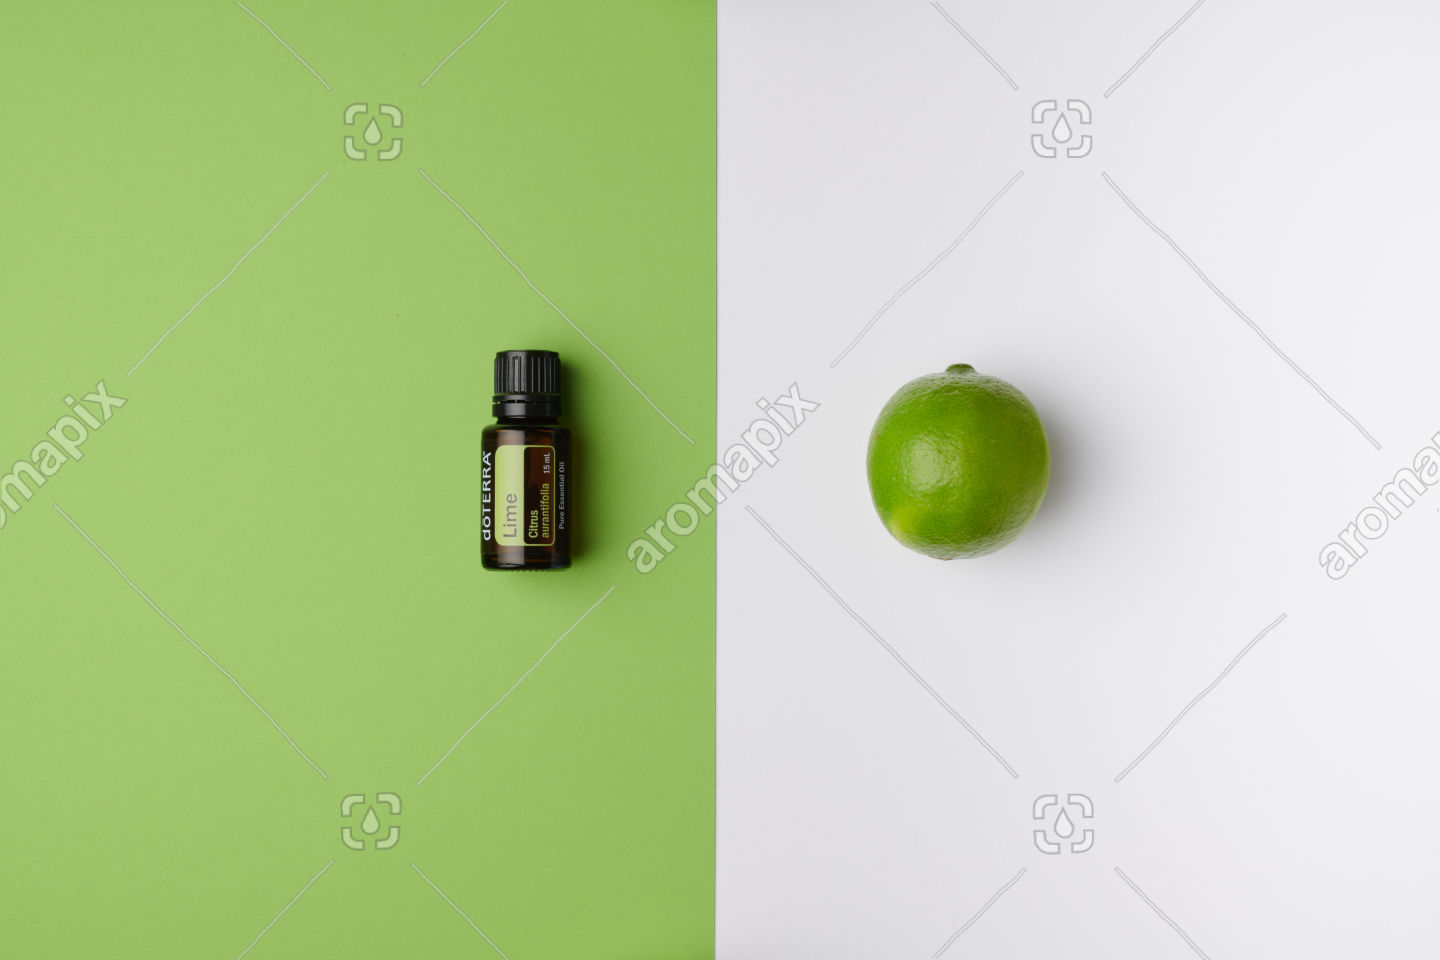 doTERRA Lime product and fruit on green and white background